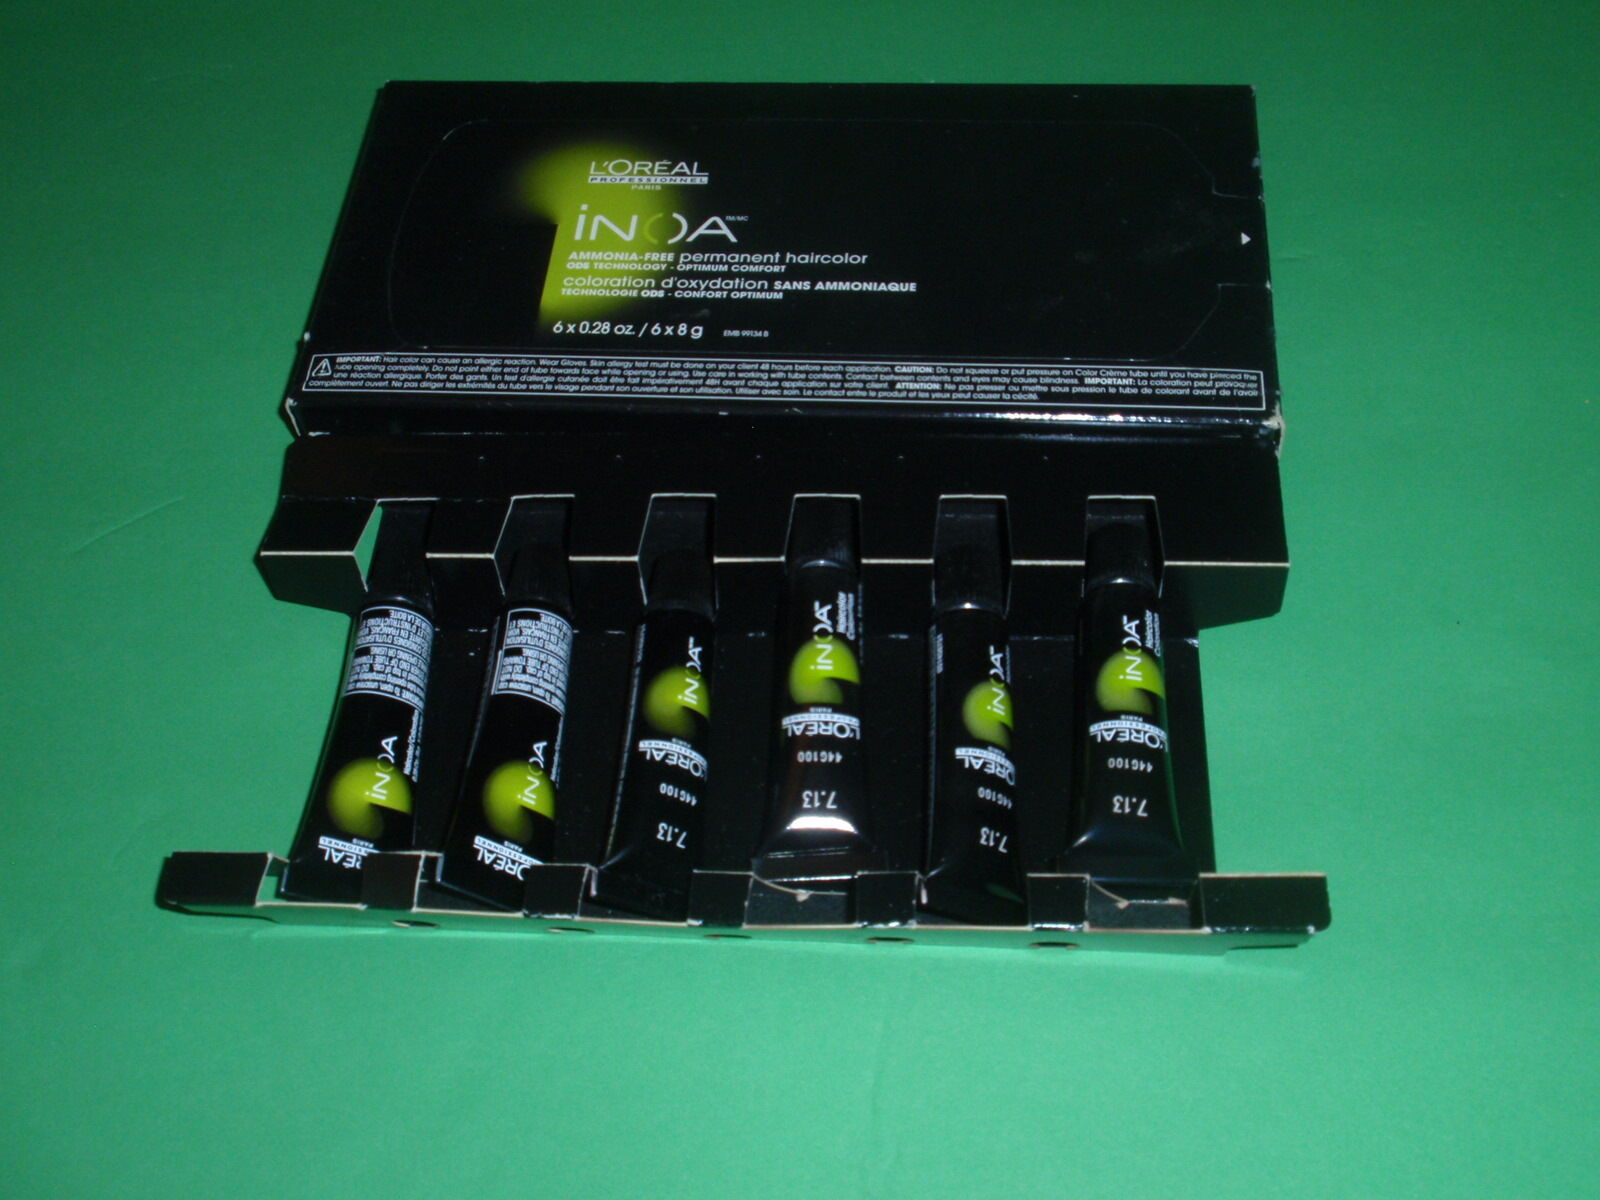 Loreal Inoa Permanent Hair Color 6x028 Oz 5565rvr Ebay